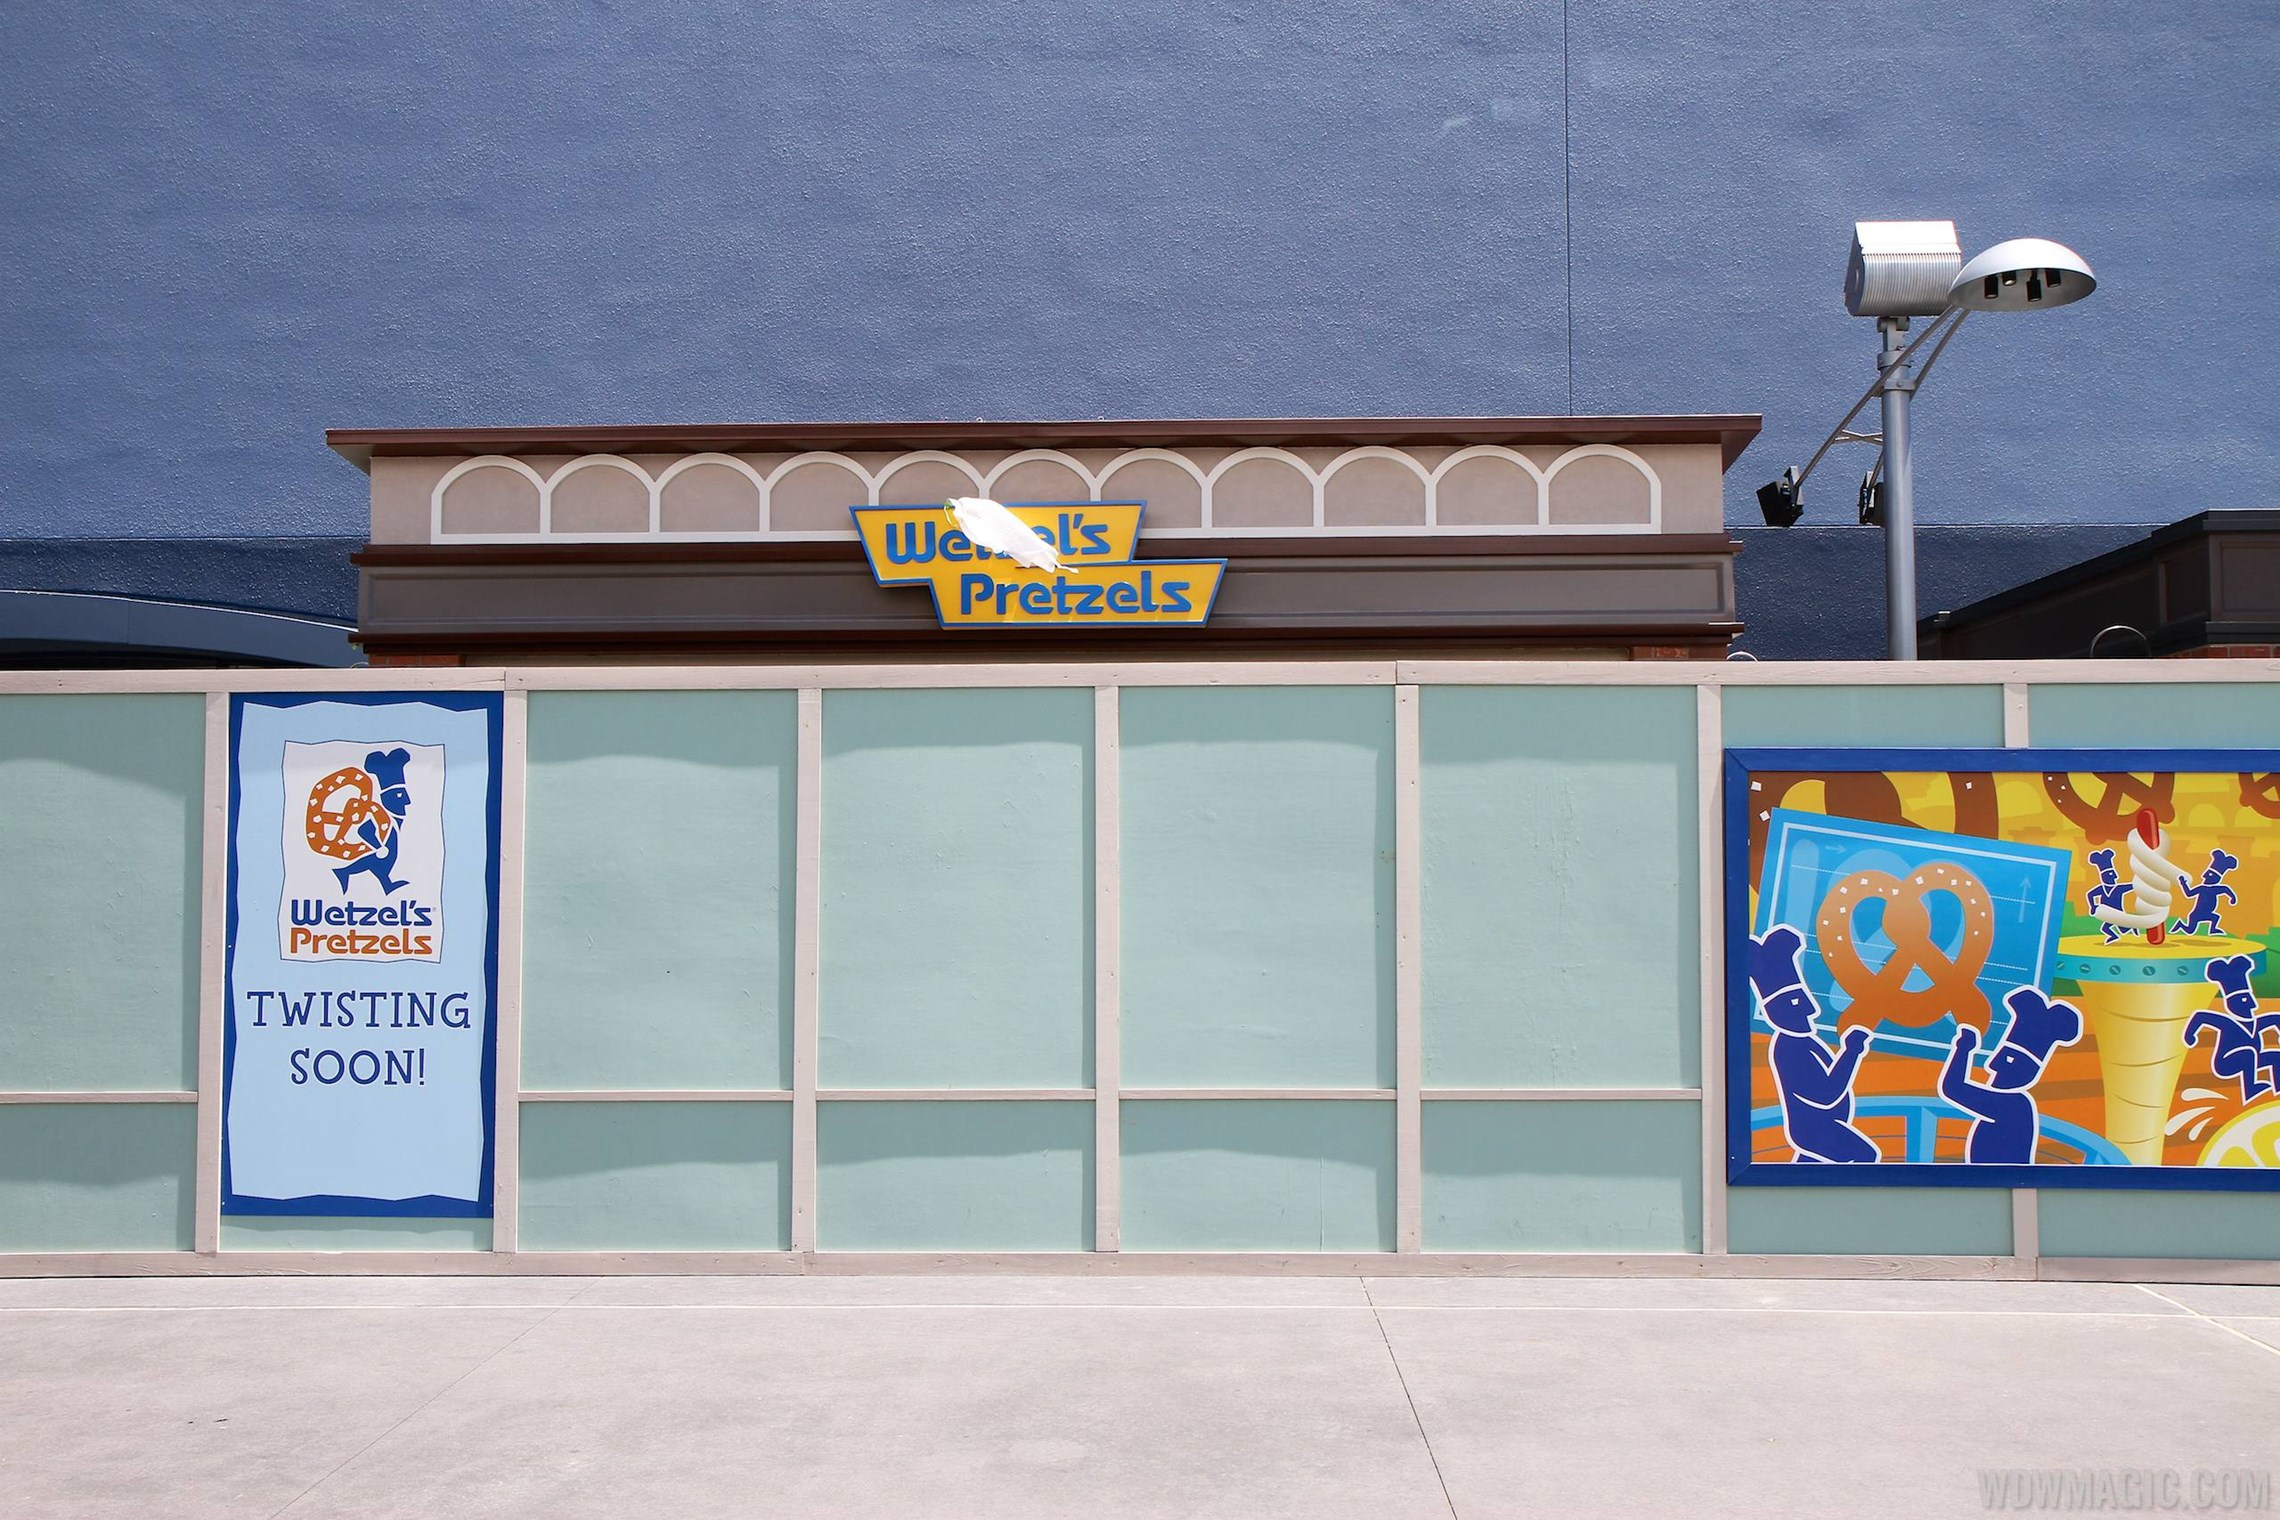 New Wetzel's Pretzels and Haagen Dazs kiosks under construction on the West Side